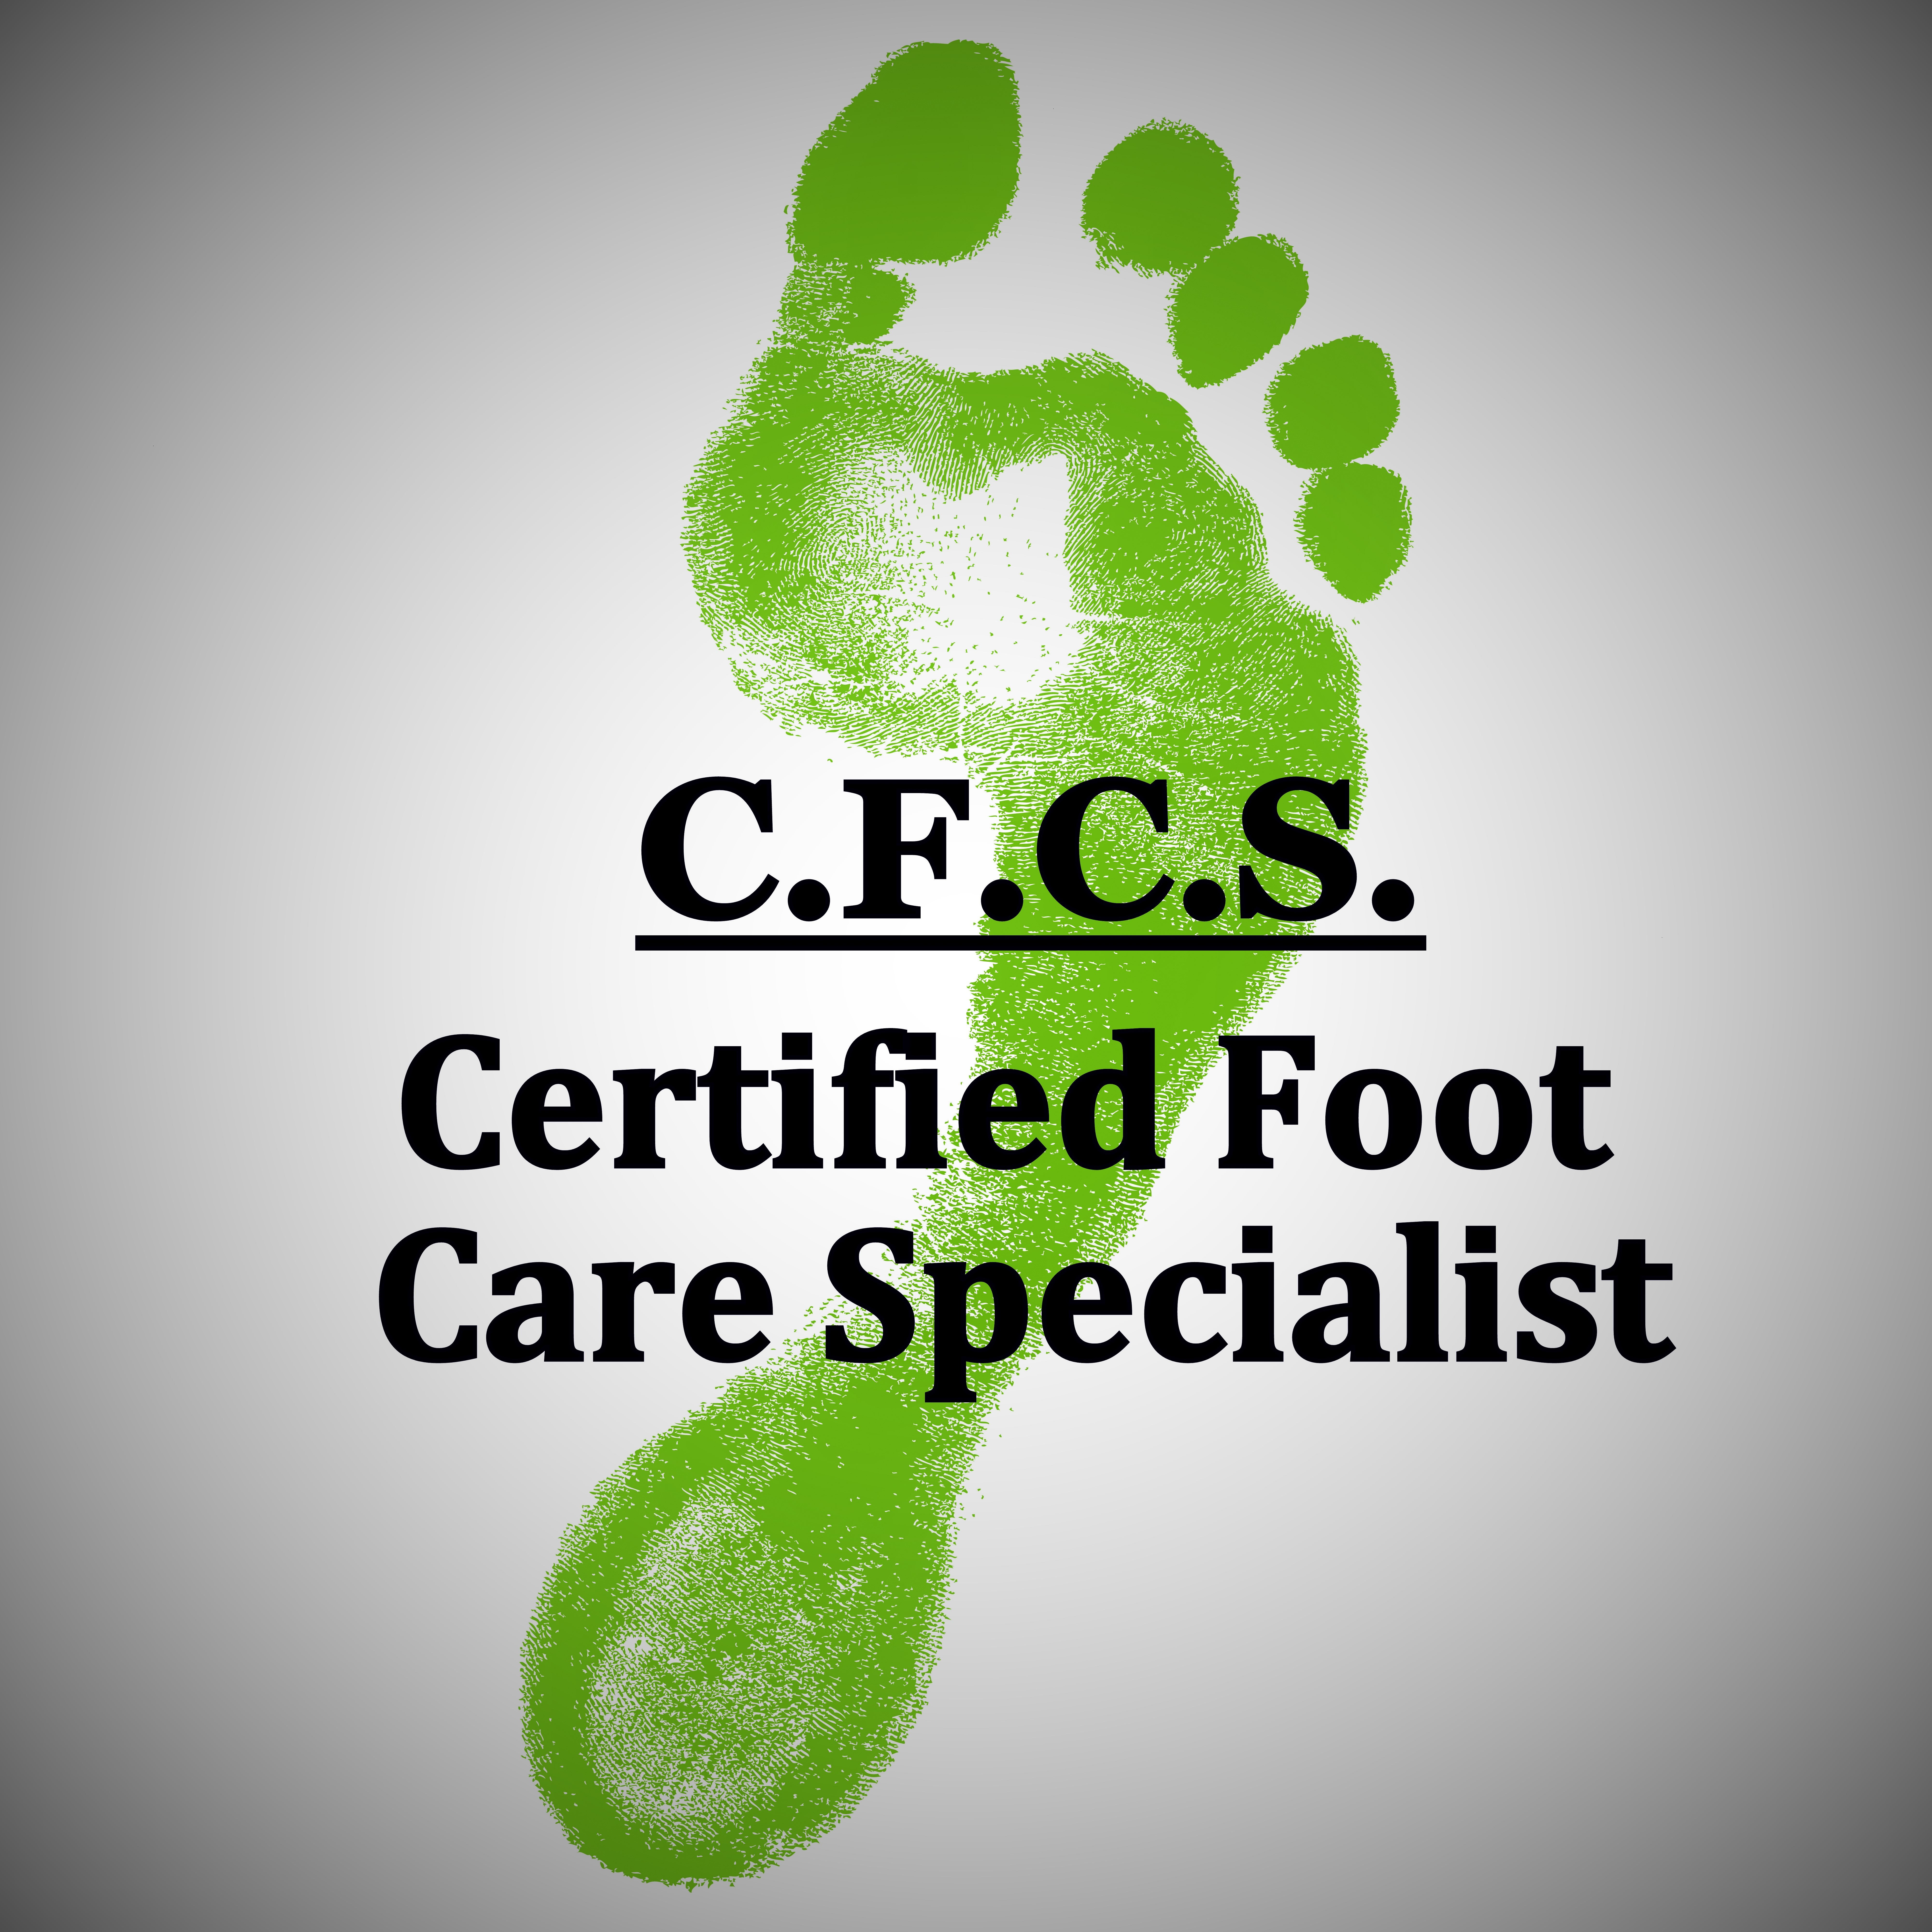 American foot care nurses association eligibility any lecture program that awards continuing education credits and any qualified hands on proctor is acceptable 1betcityfo Gallery